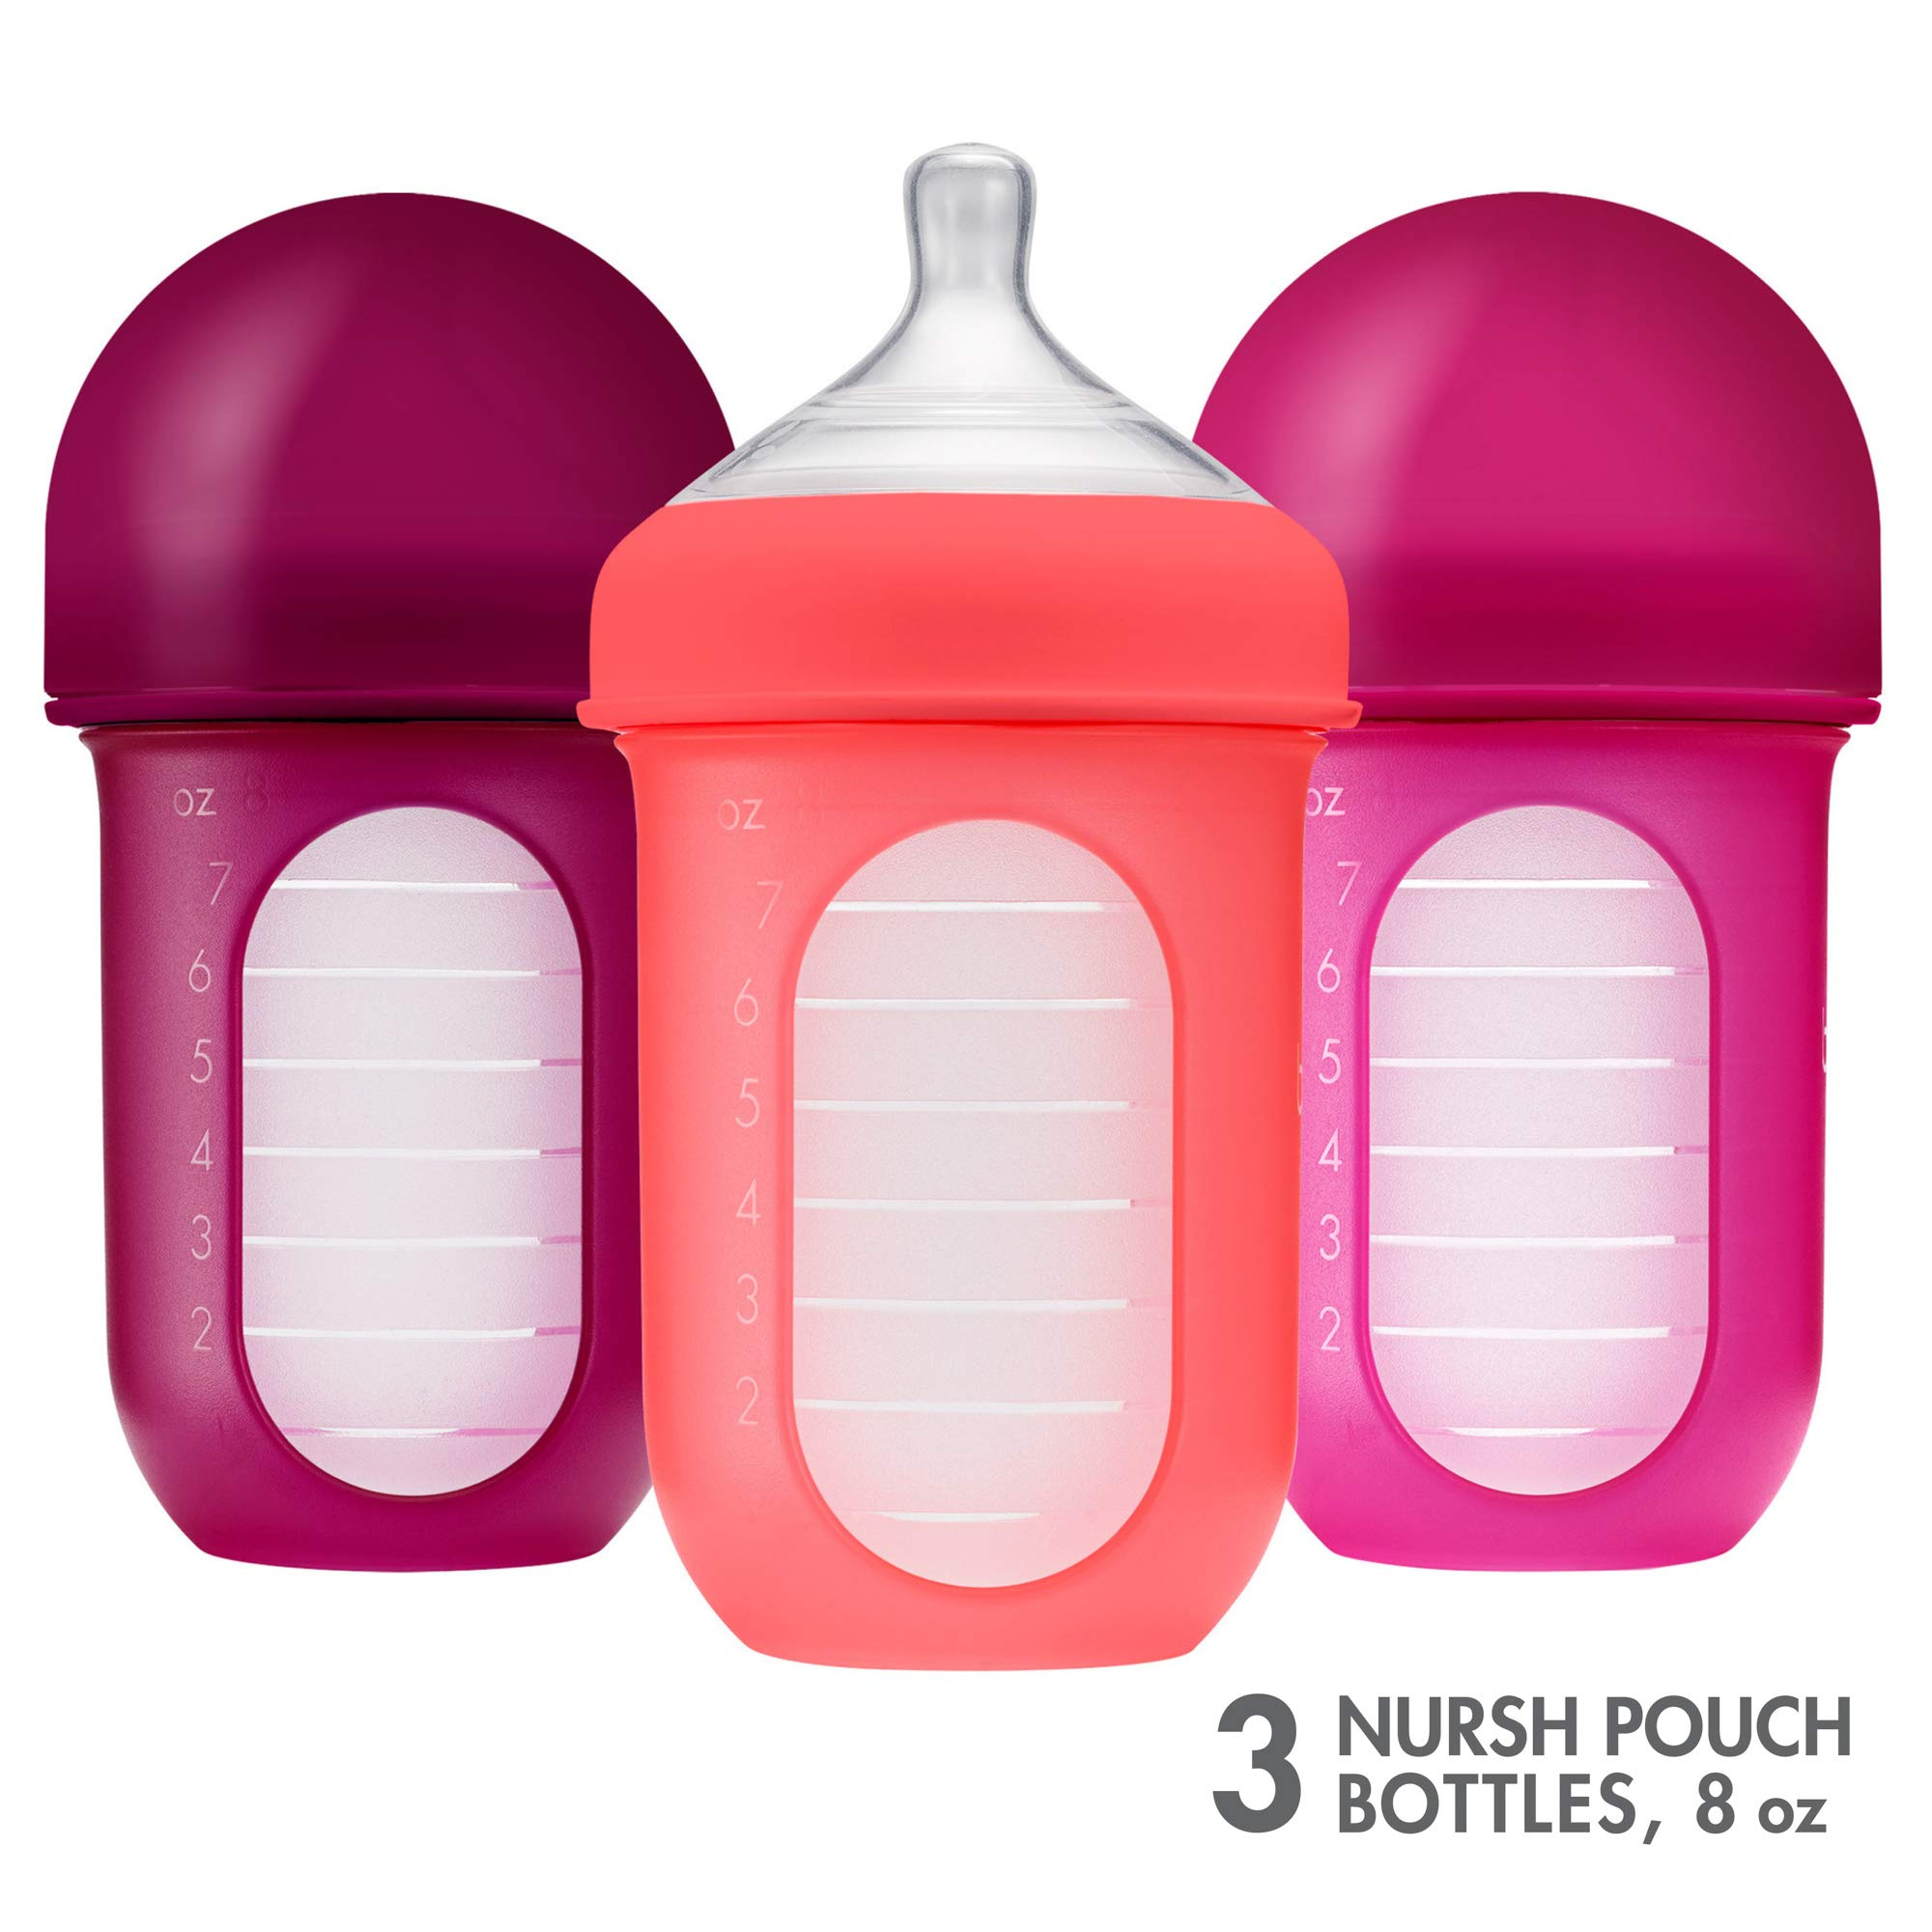 Boon, NURSH Reusable Silicone Pouch Bottle, Air-Free Feeding, 8 Ounce with Stage 2 Medium Flow Nipple (Pack of 3) by Boon